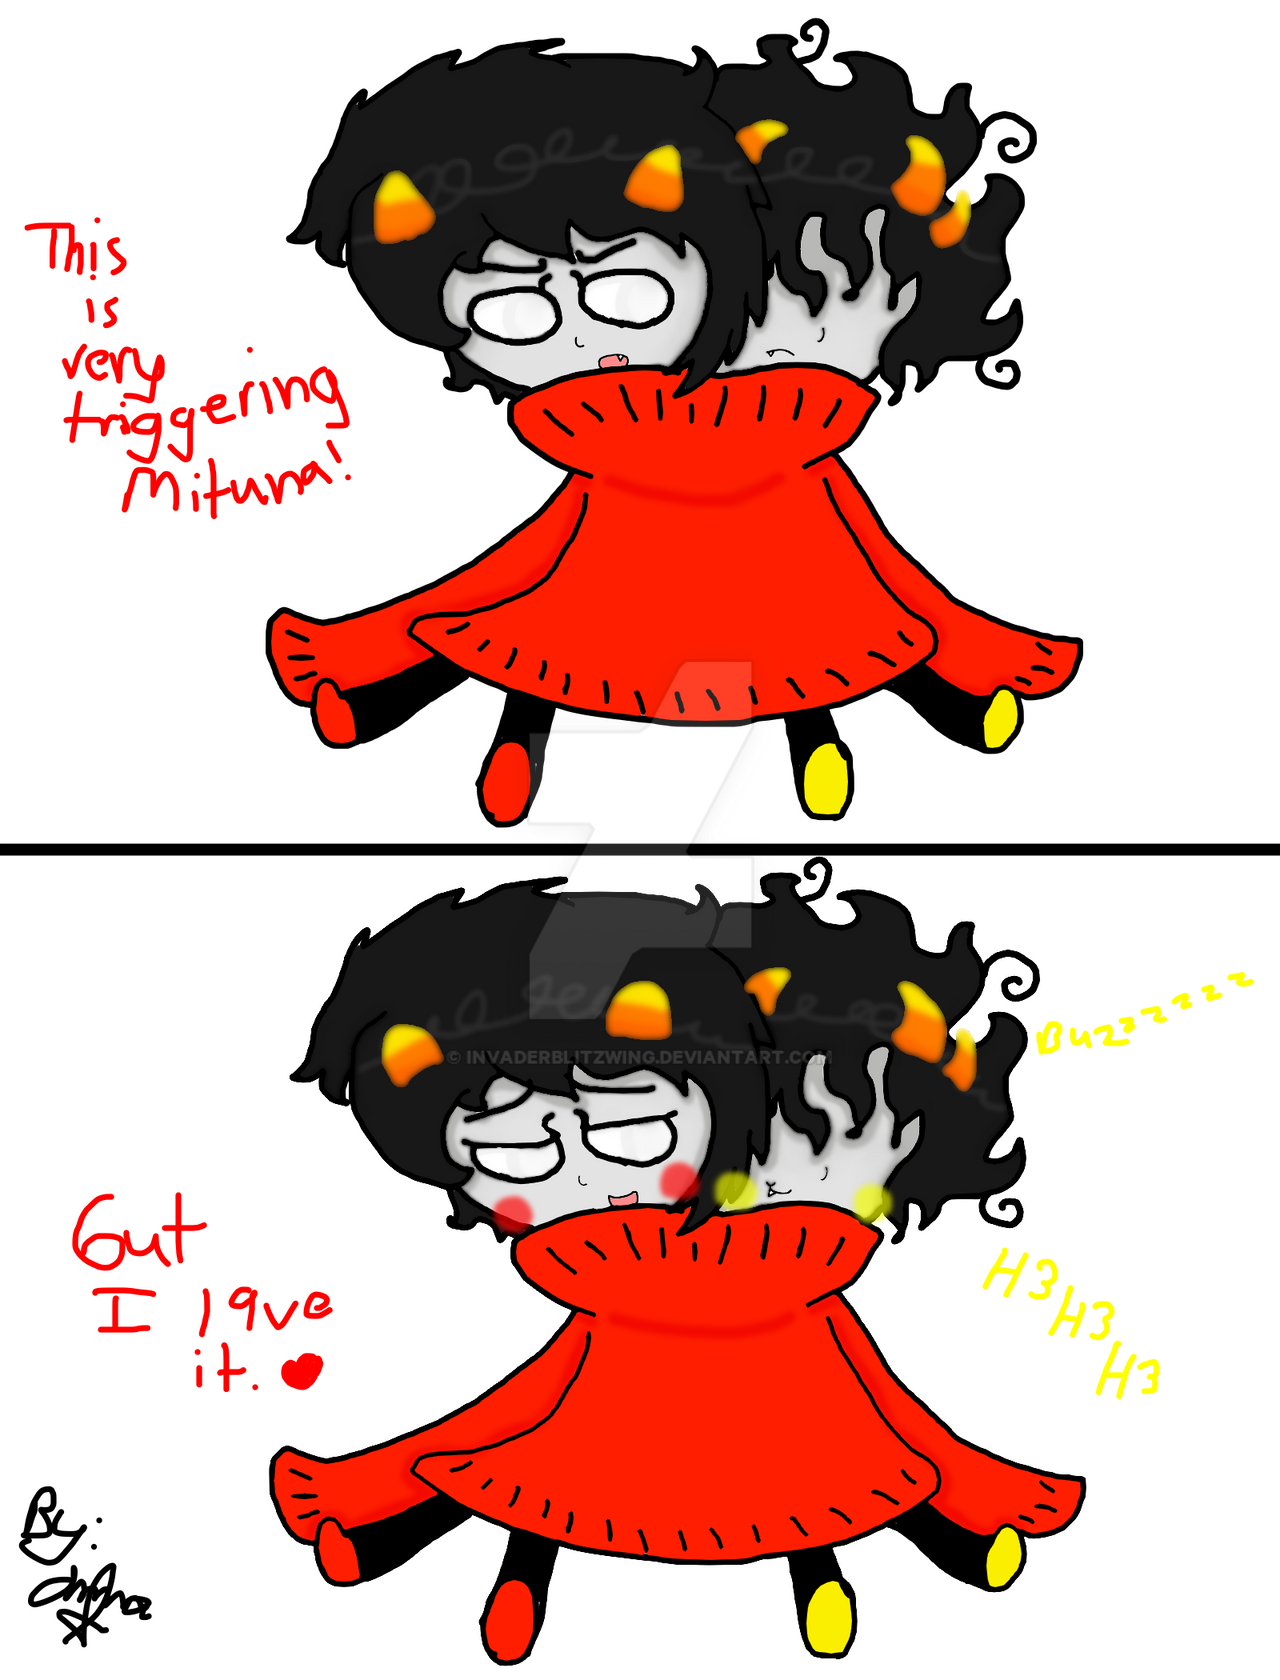 kantuna the triggering sweater problem by